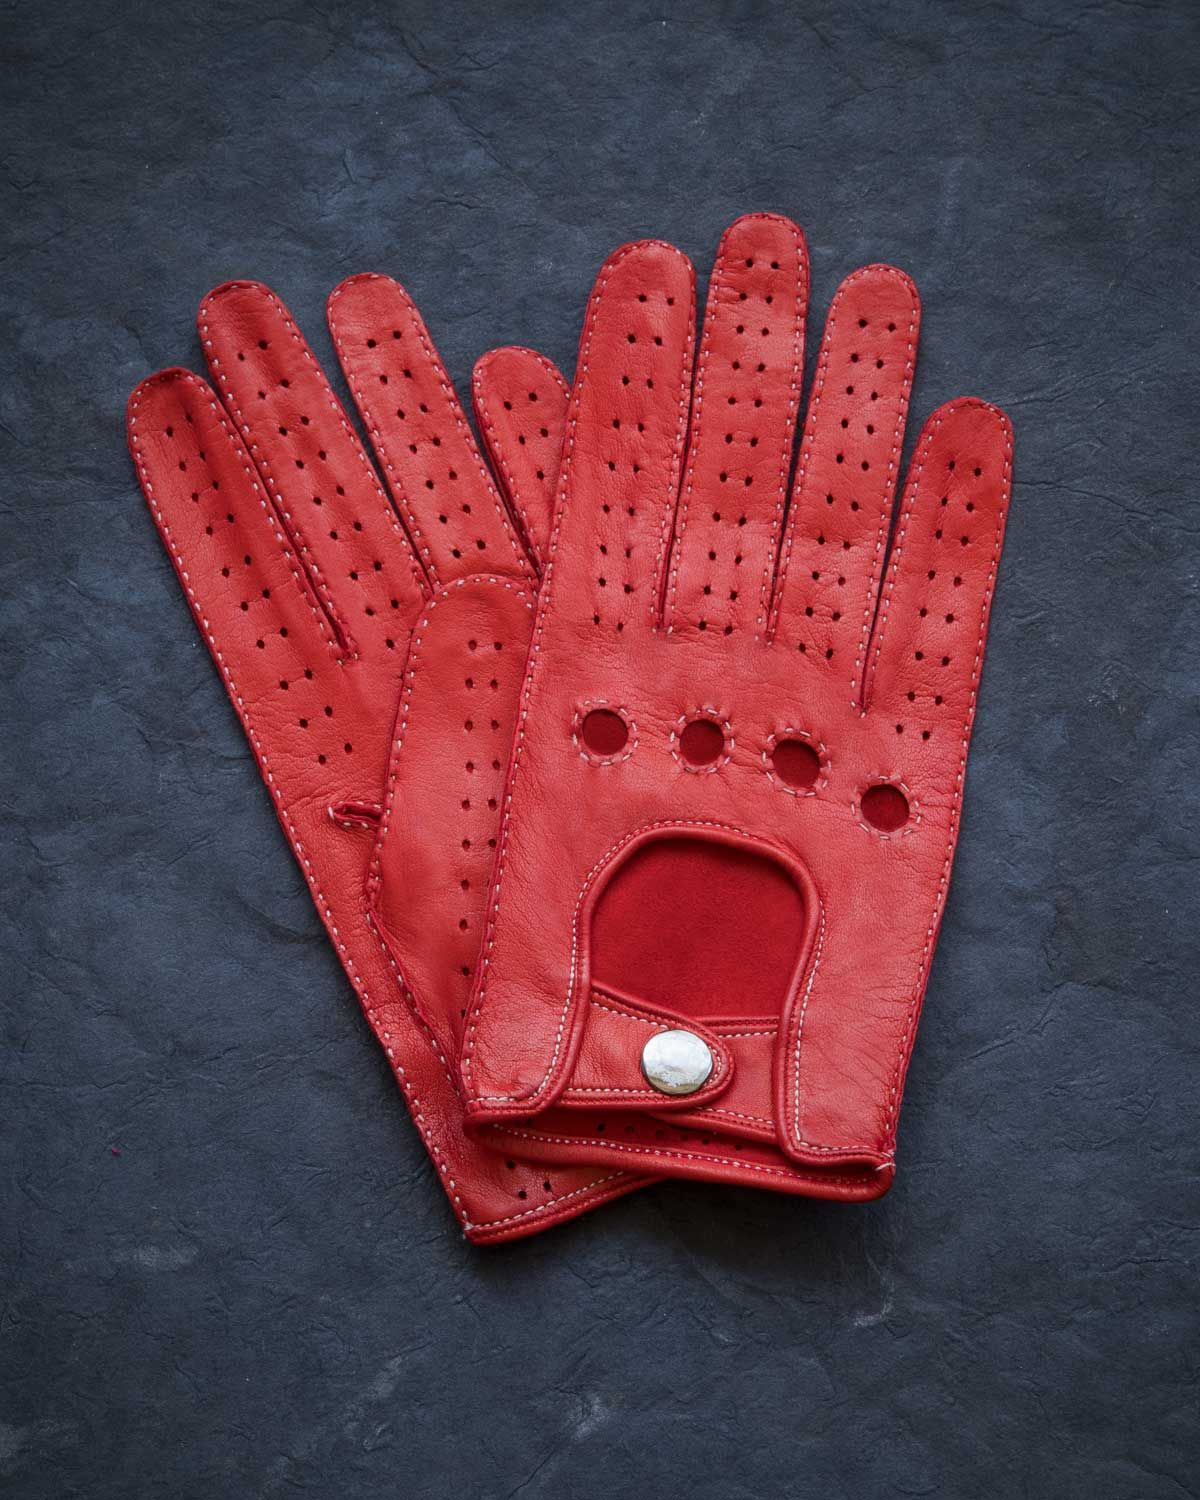 fd84cc5f4fbc9 Fratelli Orsini hand-sewn Italian leather driving gloves with contrast  stitching in bold red.